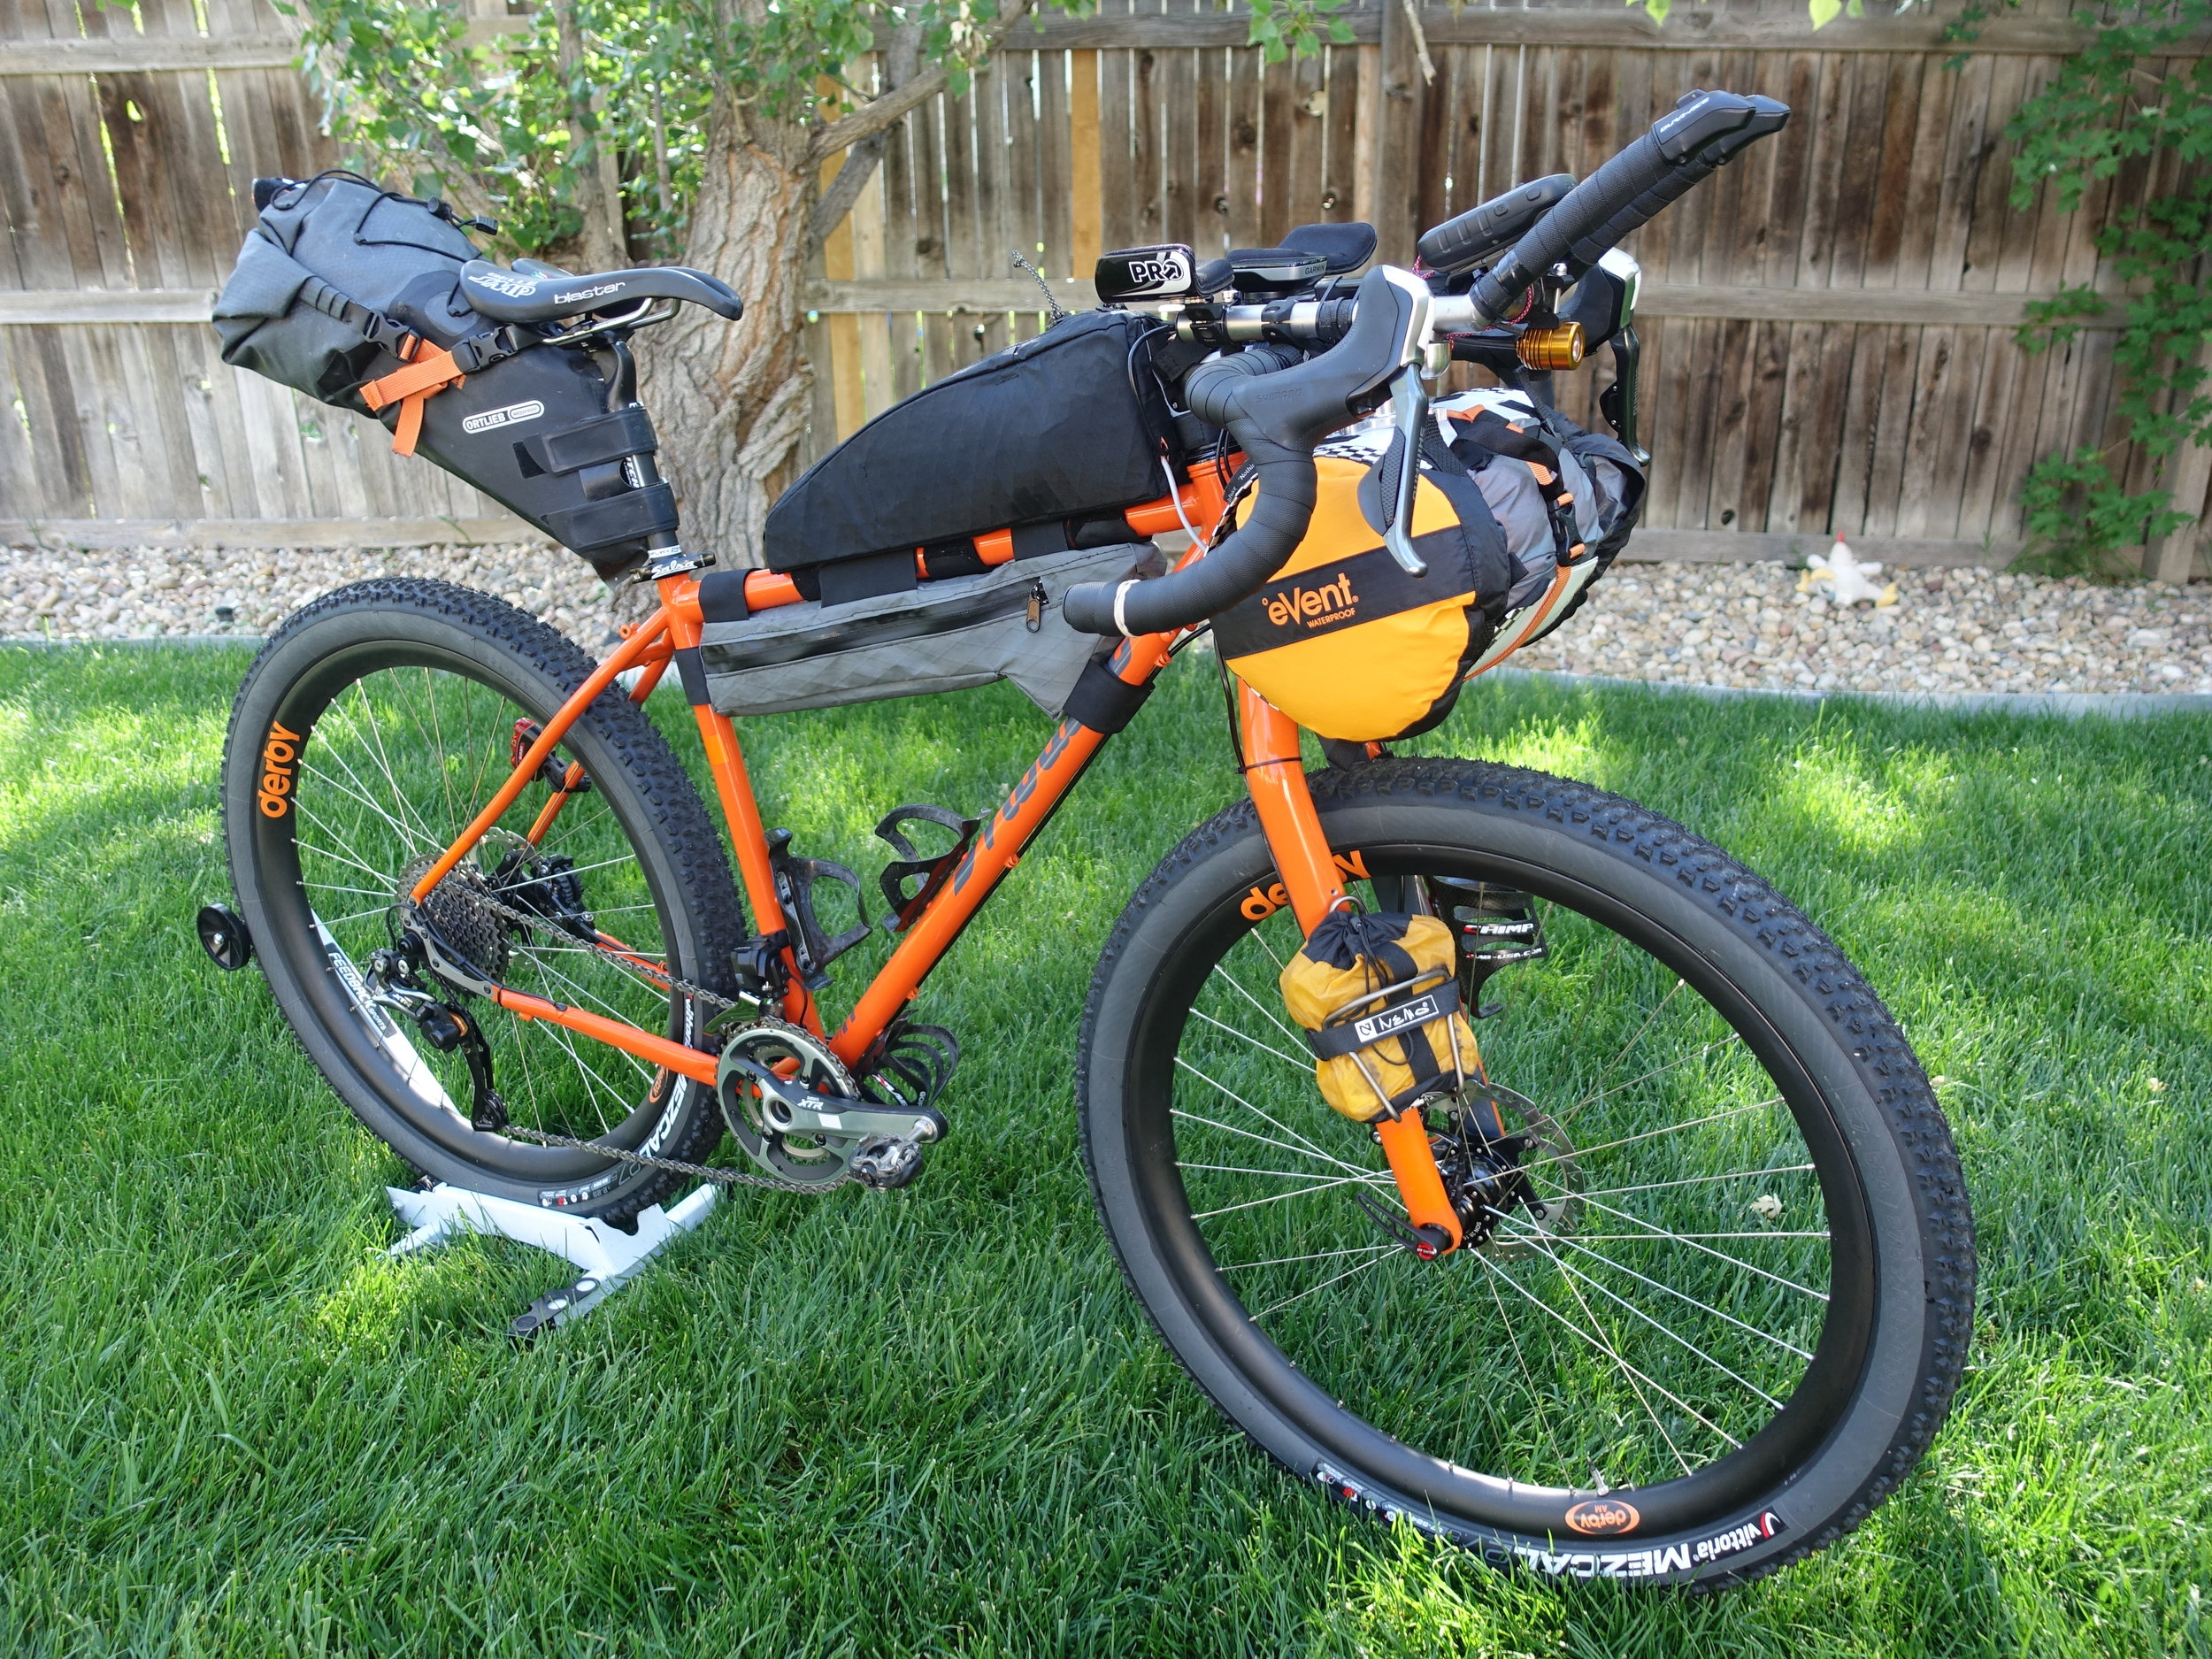 My beautiful Mosaic, decked out and ready for nearly 3,000 miles of action.